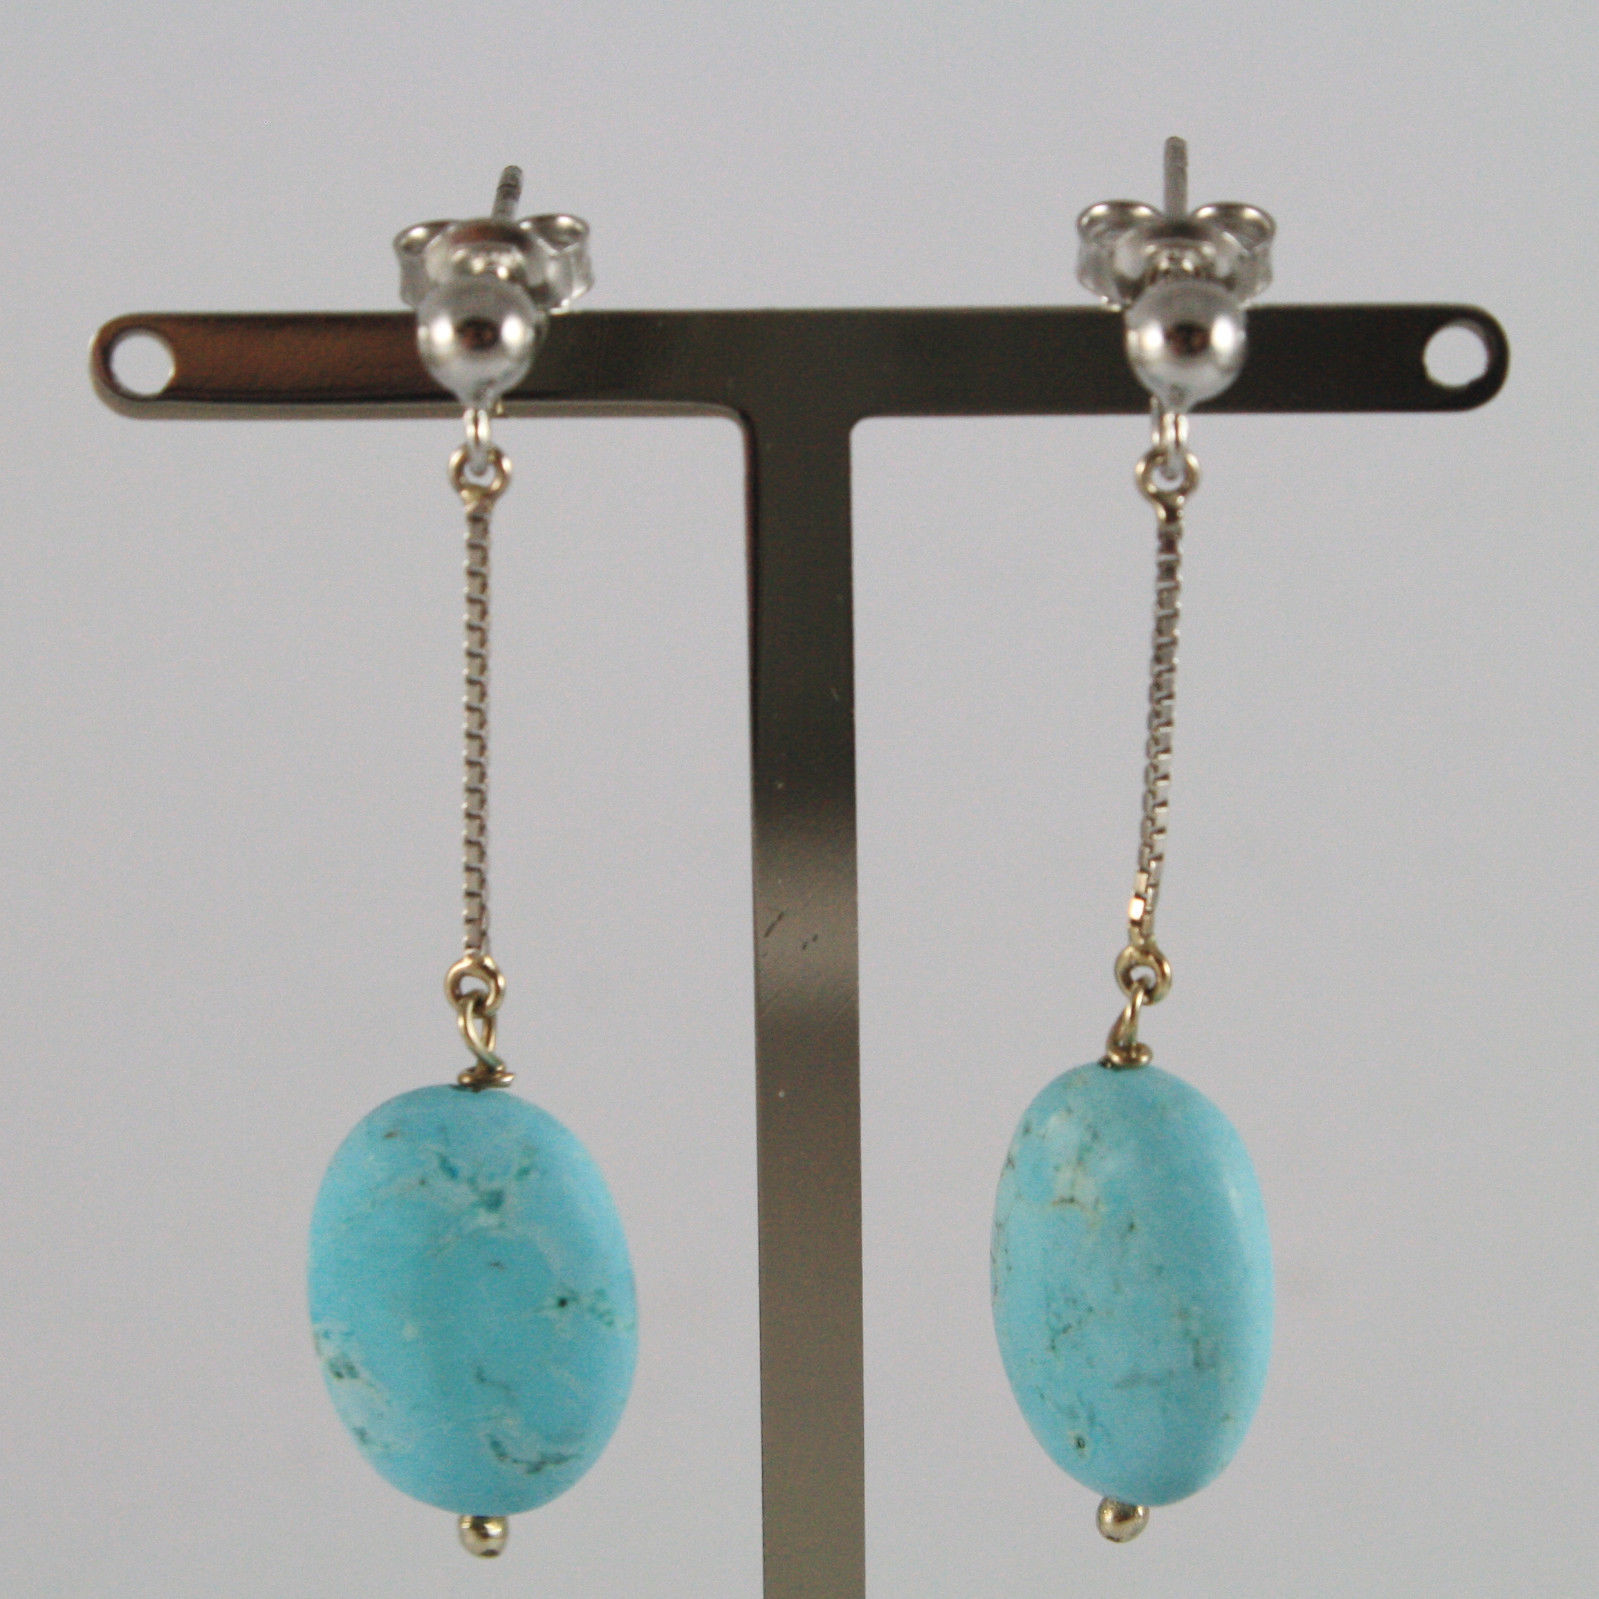 SOLID 18K WHITE GOLD EARRINGS, WITH OVALS OF TURQUOISE, MADE IN ITALY